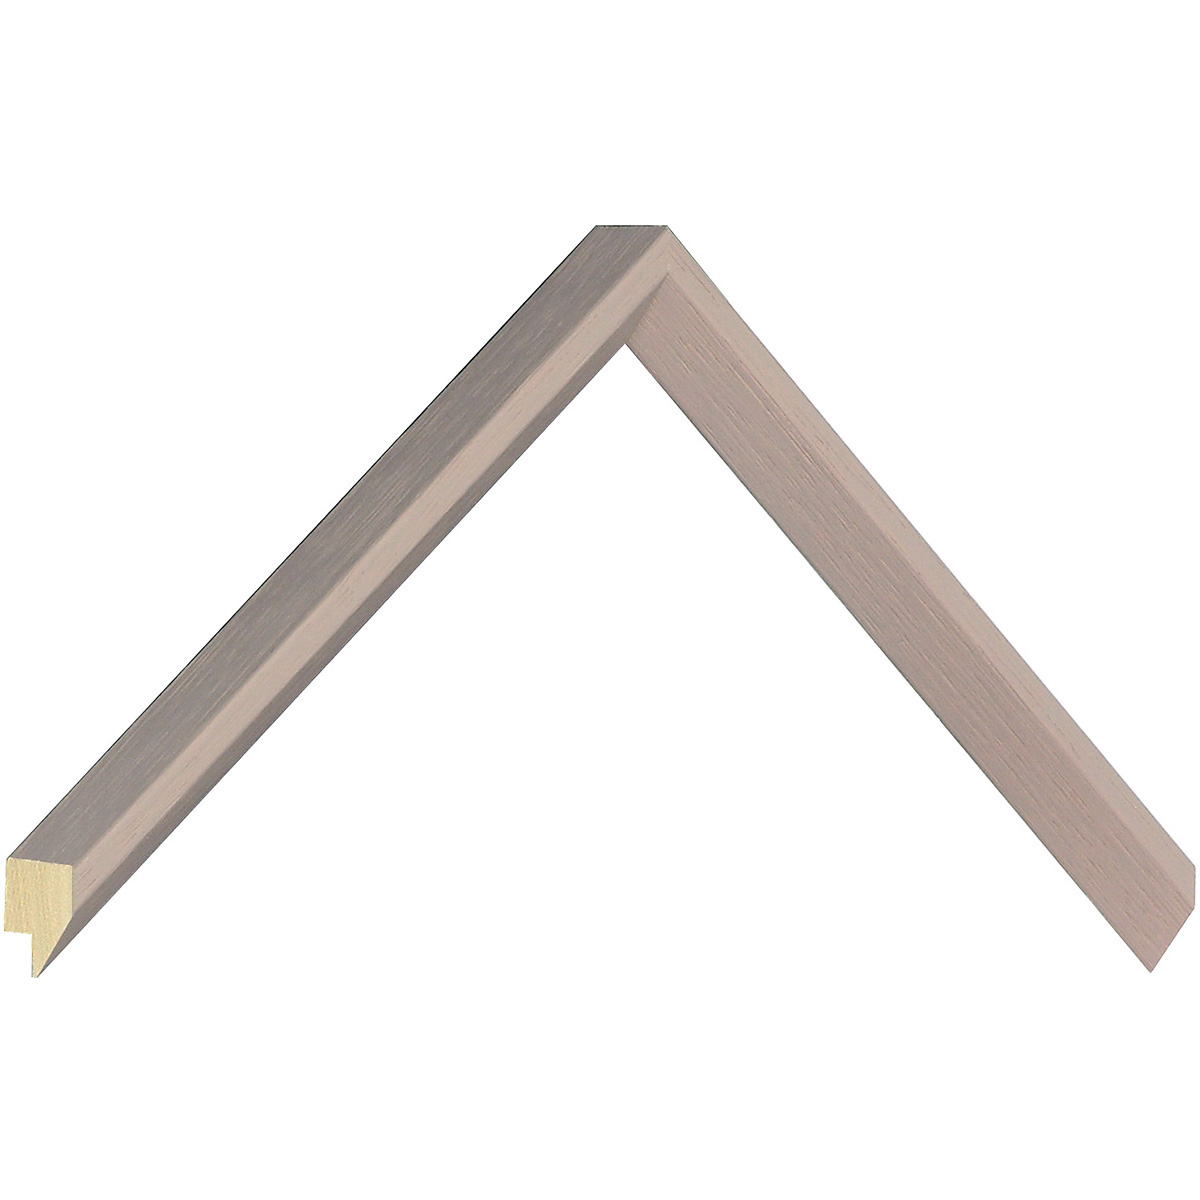 Moulding ayous 25mm height, 14mm width, sand